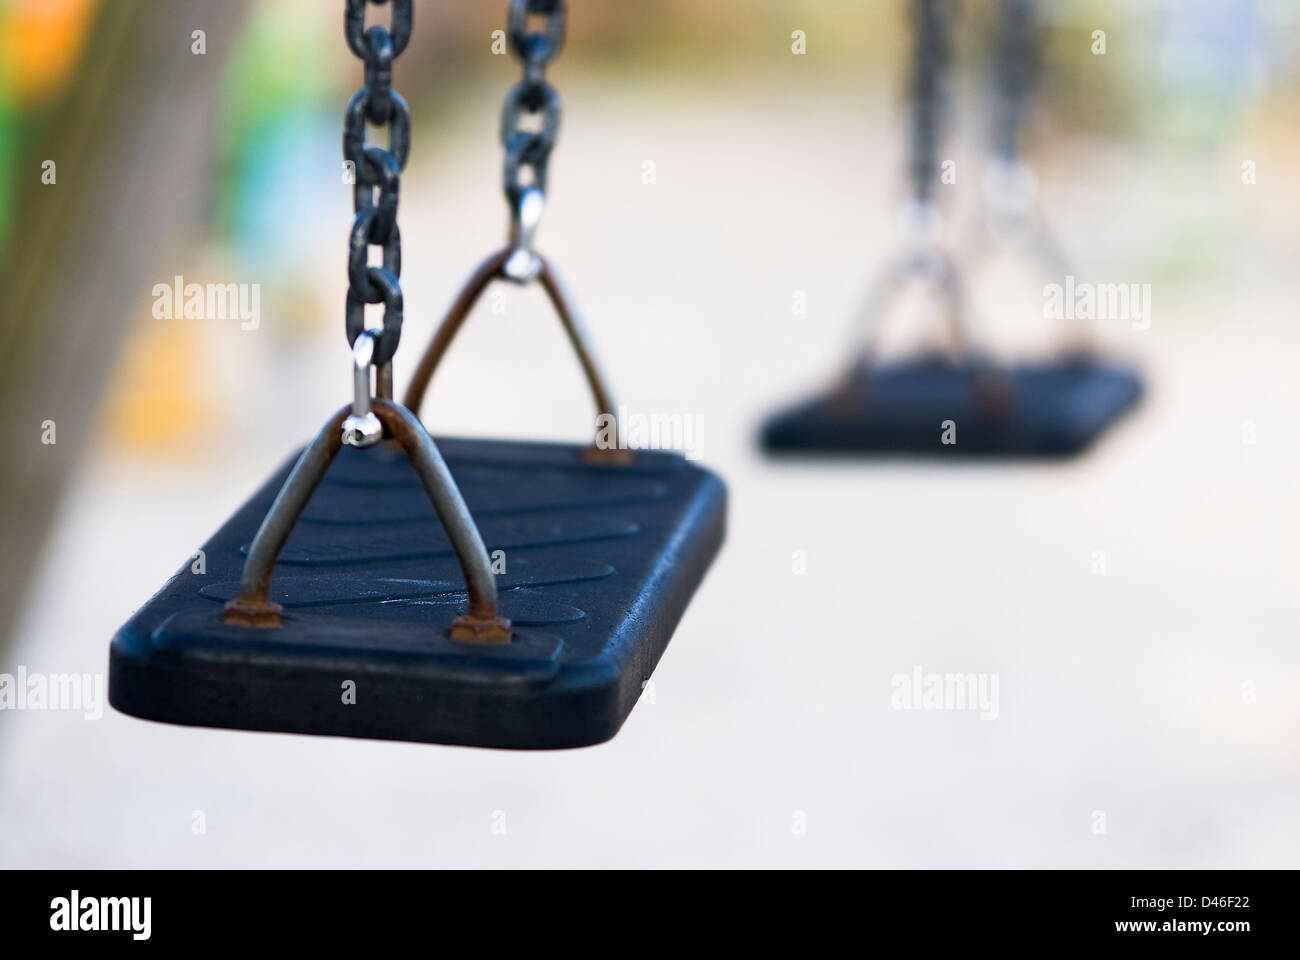 no children swings in a playground, solitary - Stock Image